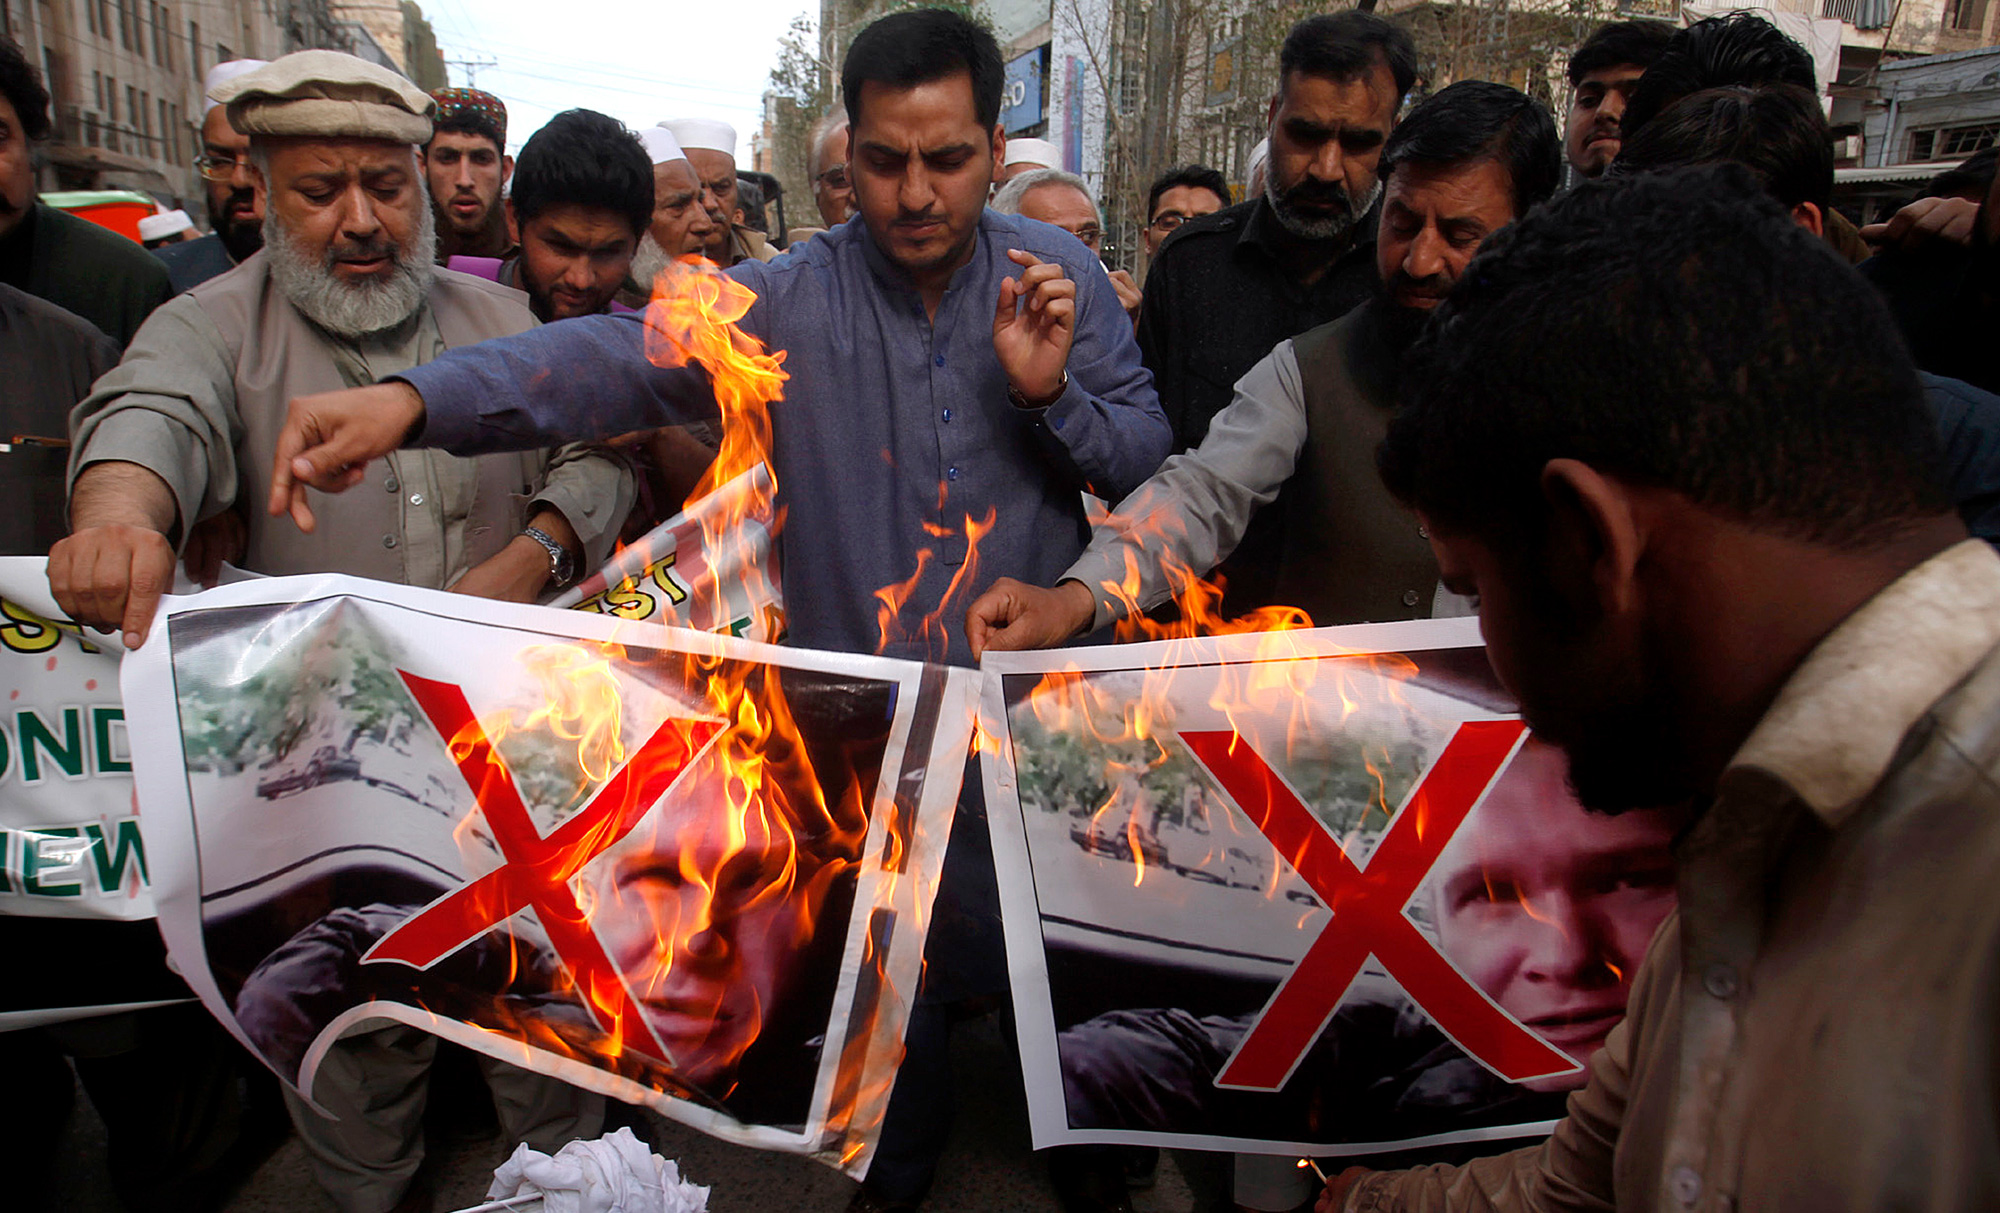 Traders in Peshawar, Pakistan, burn pictures of Brenton Harrison Tarrant, one of the suspects in Christchurch terrorist attack, on Saturday, March 16, 2019. Tarrant, being Australian, comes from a long tradition of racism that predates white supremacist websites